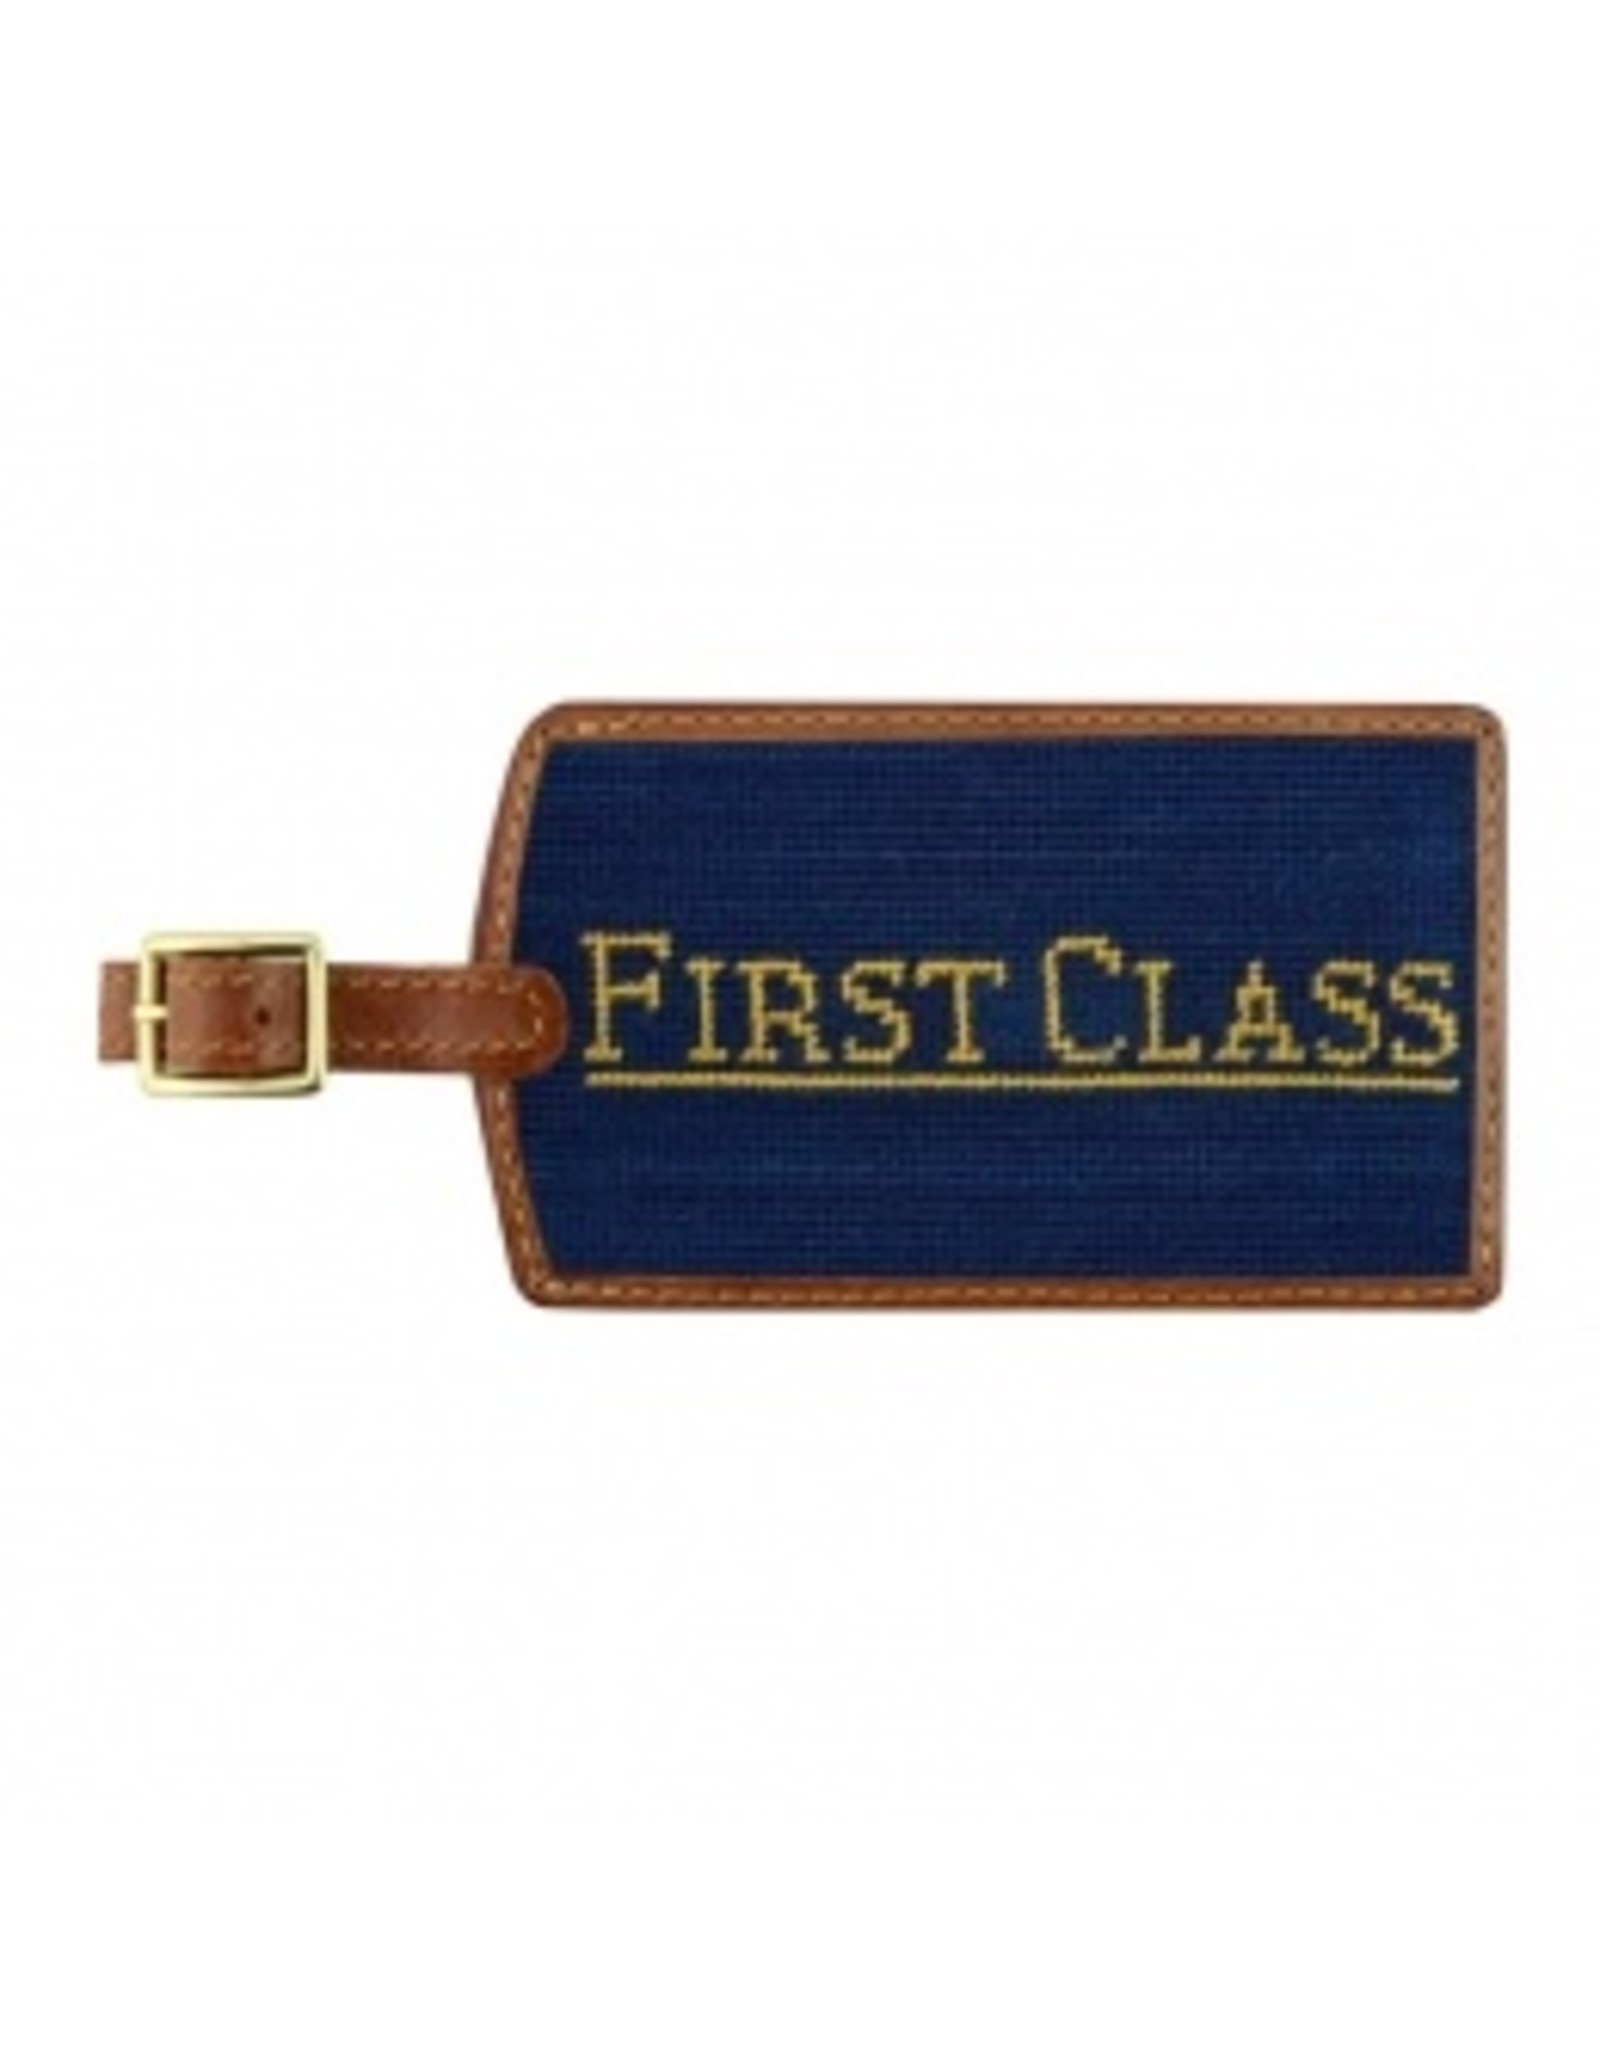 Smathers & Branson S&B Luggage Tag, First Class (navy)